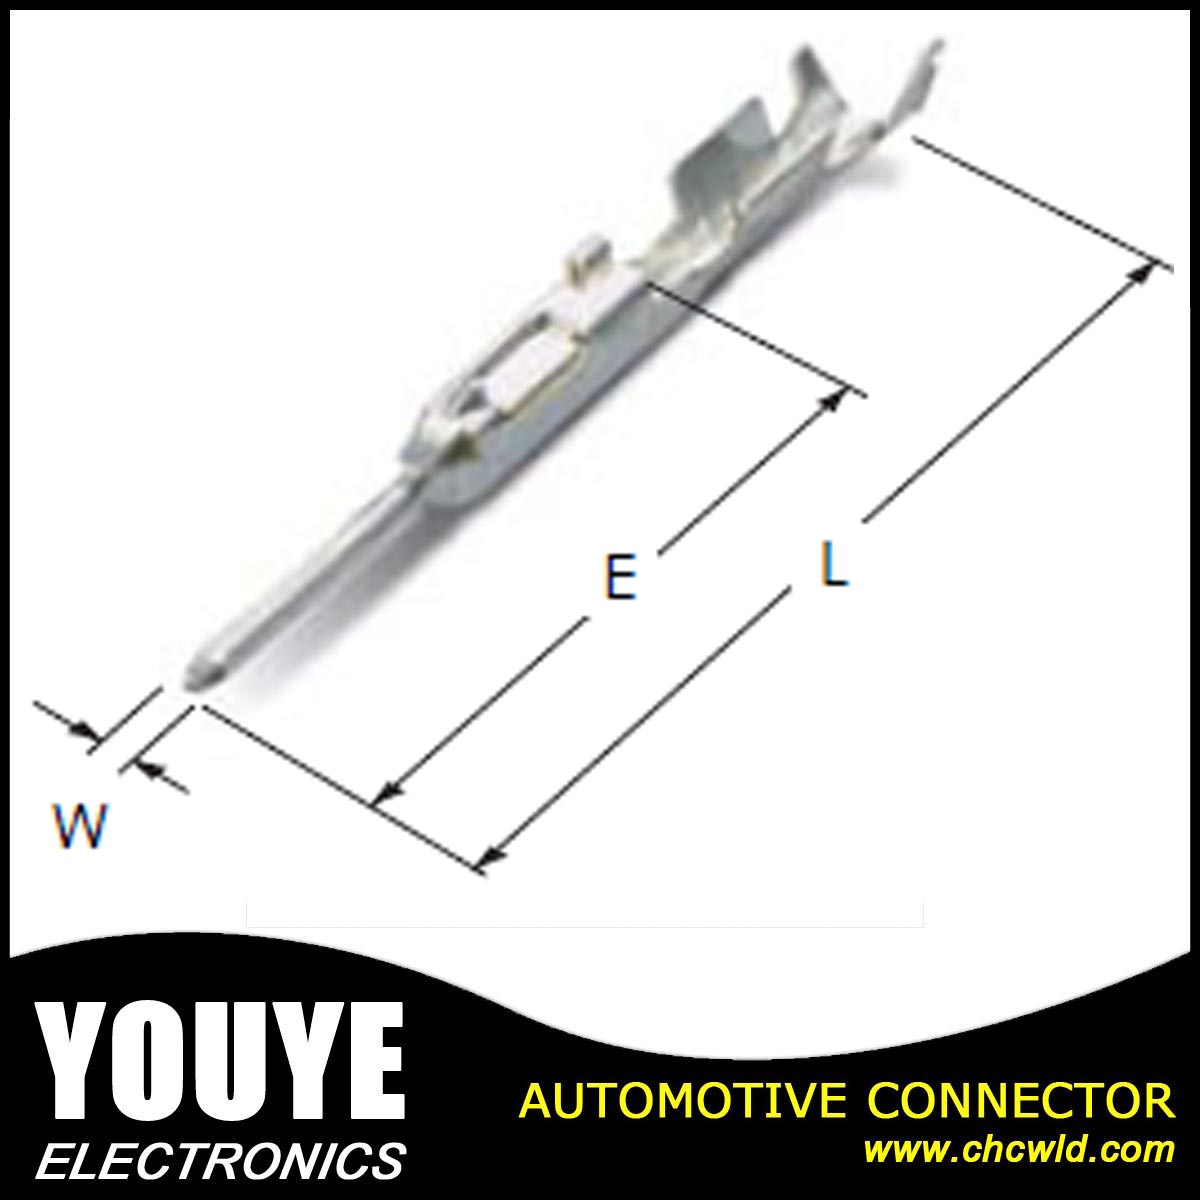 hight resolution of ket 025 series st741055 3 automotive wire to wire terminal